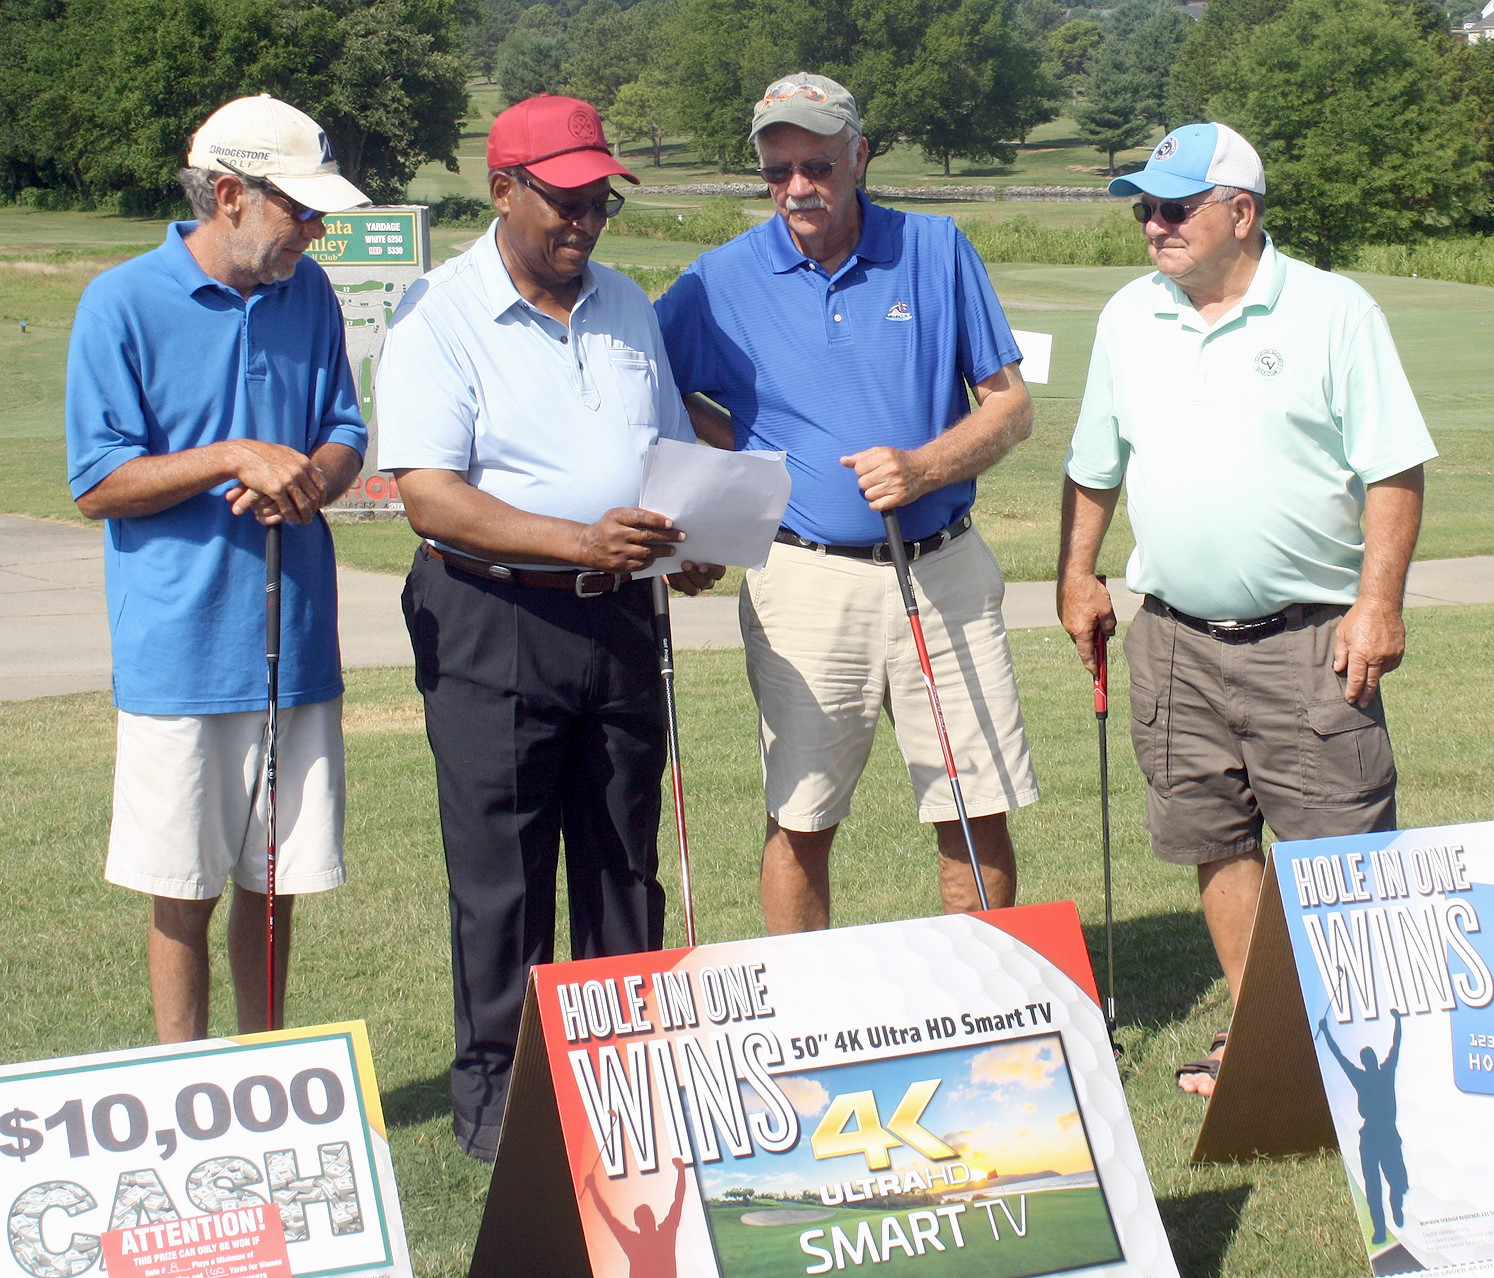 100 BMBC golf event to aid scholarships | The Cleveland Daily Banner